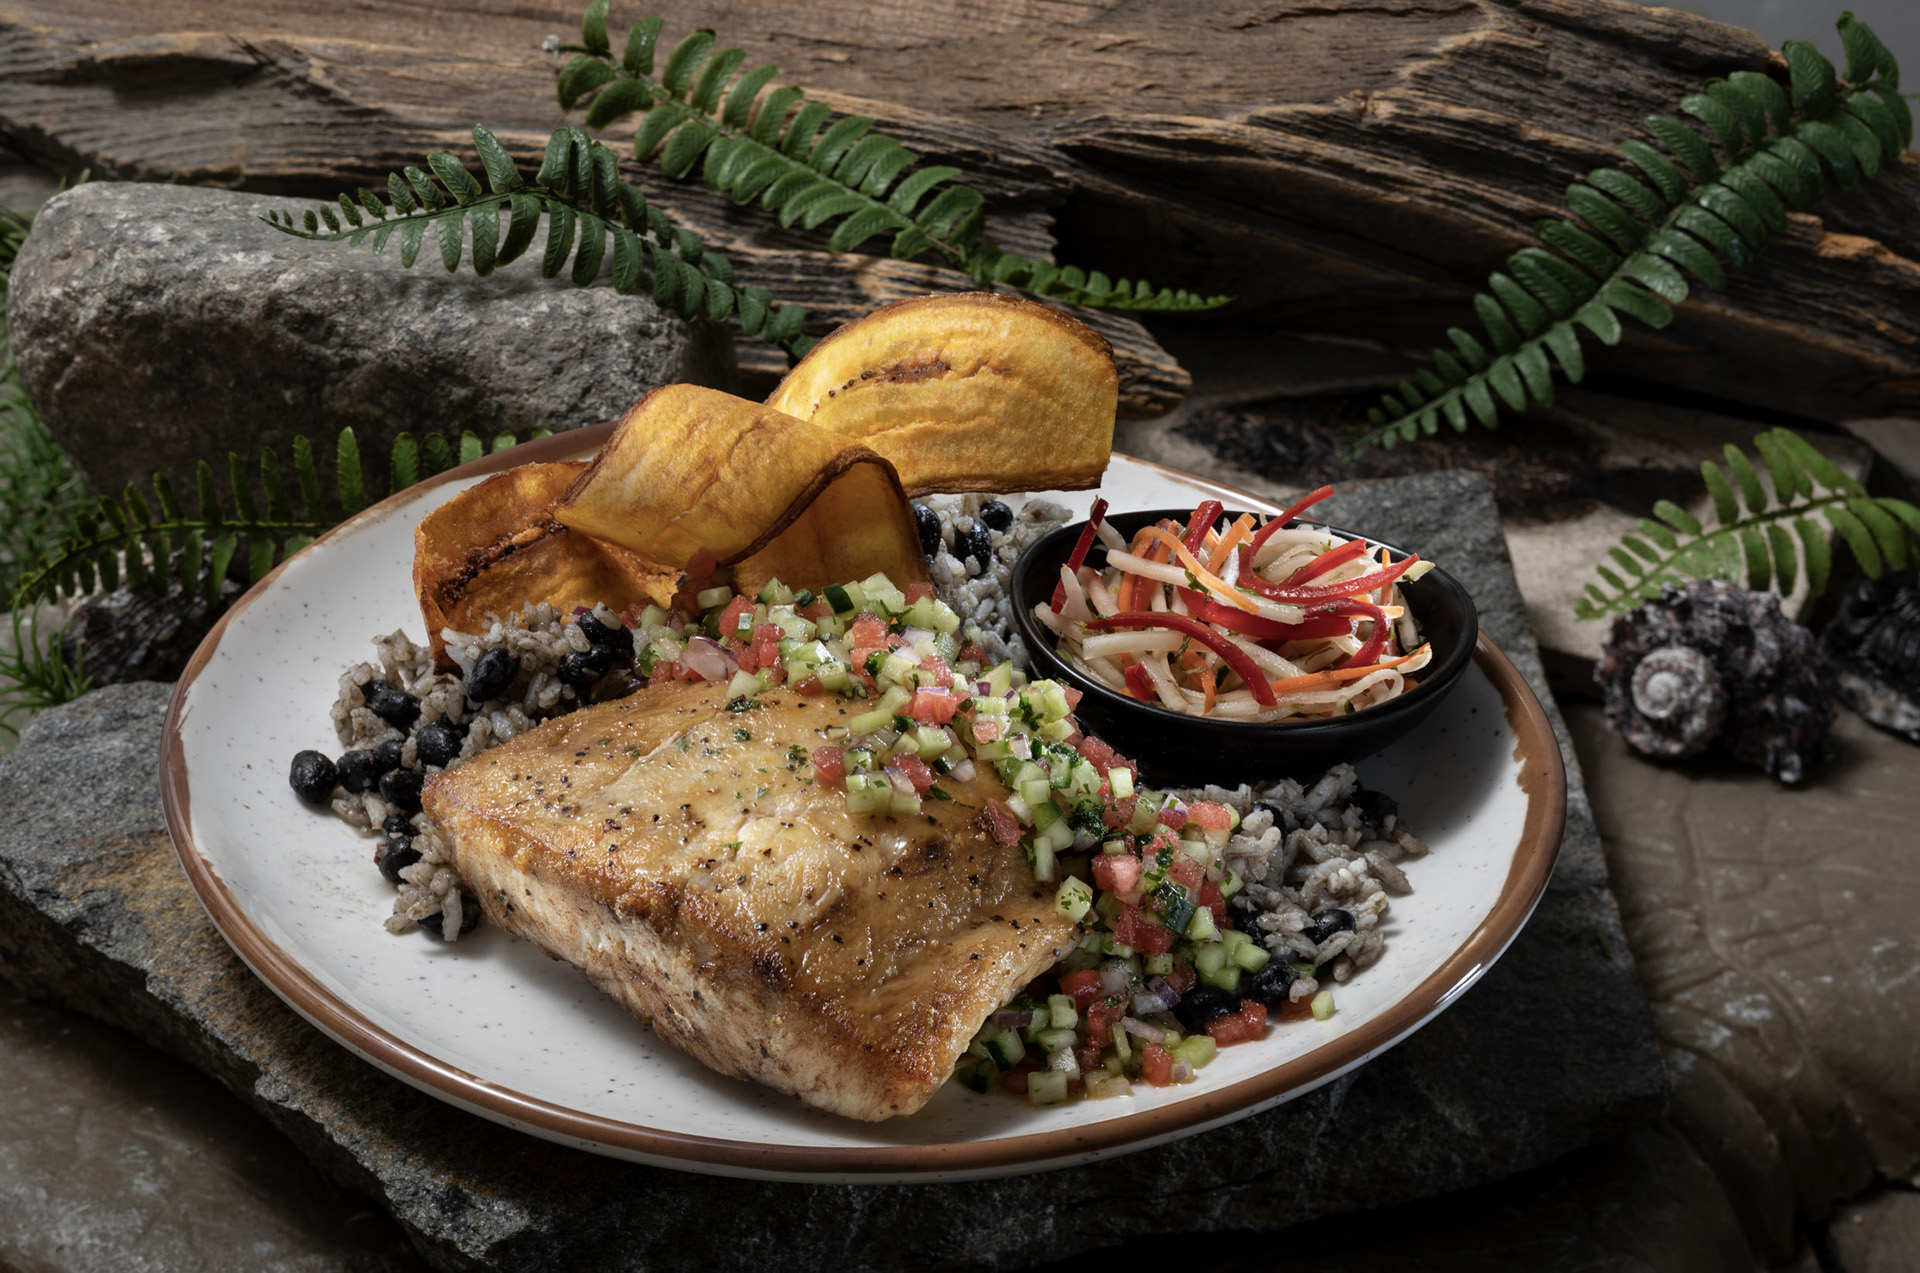 A Roasted Red Snapper will also be on the Jurassic Cafe menu. (Photo courtesy of Universal Studios Hollywood.)